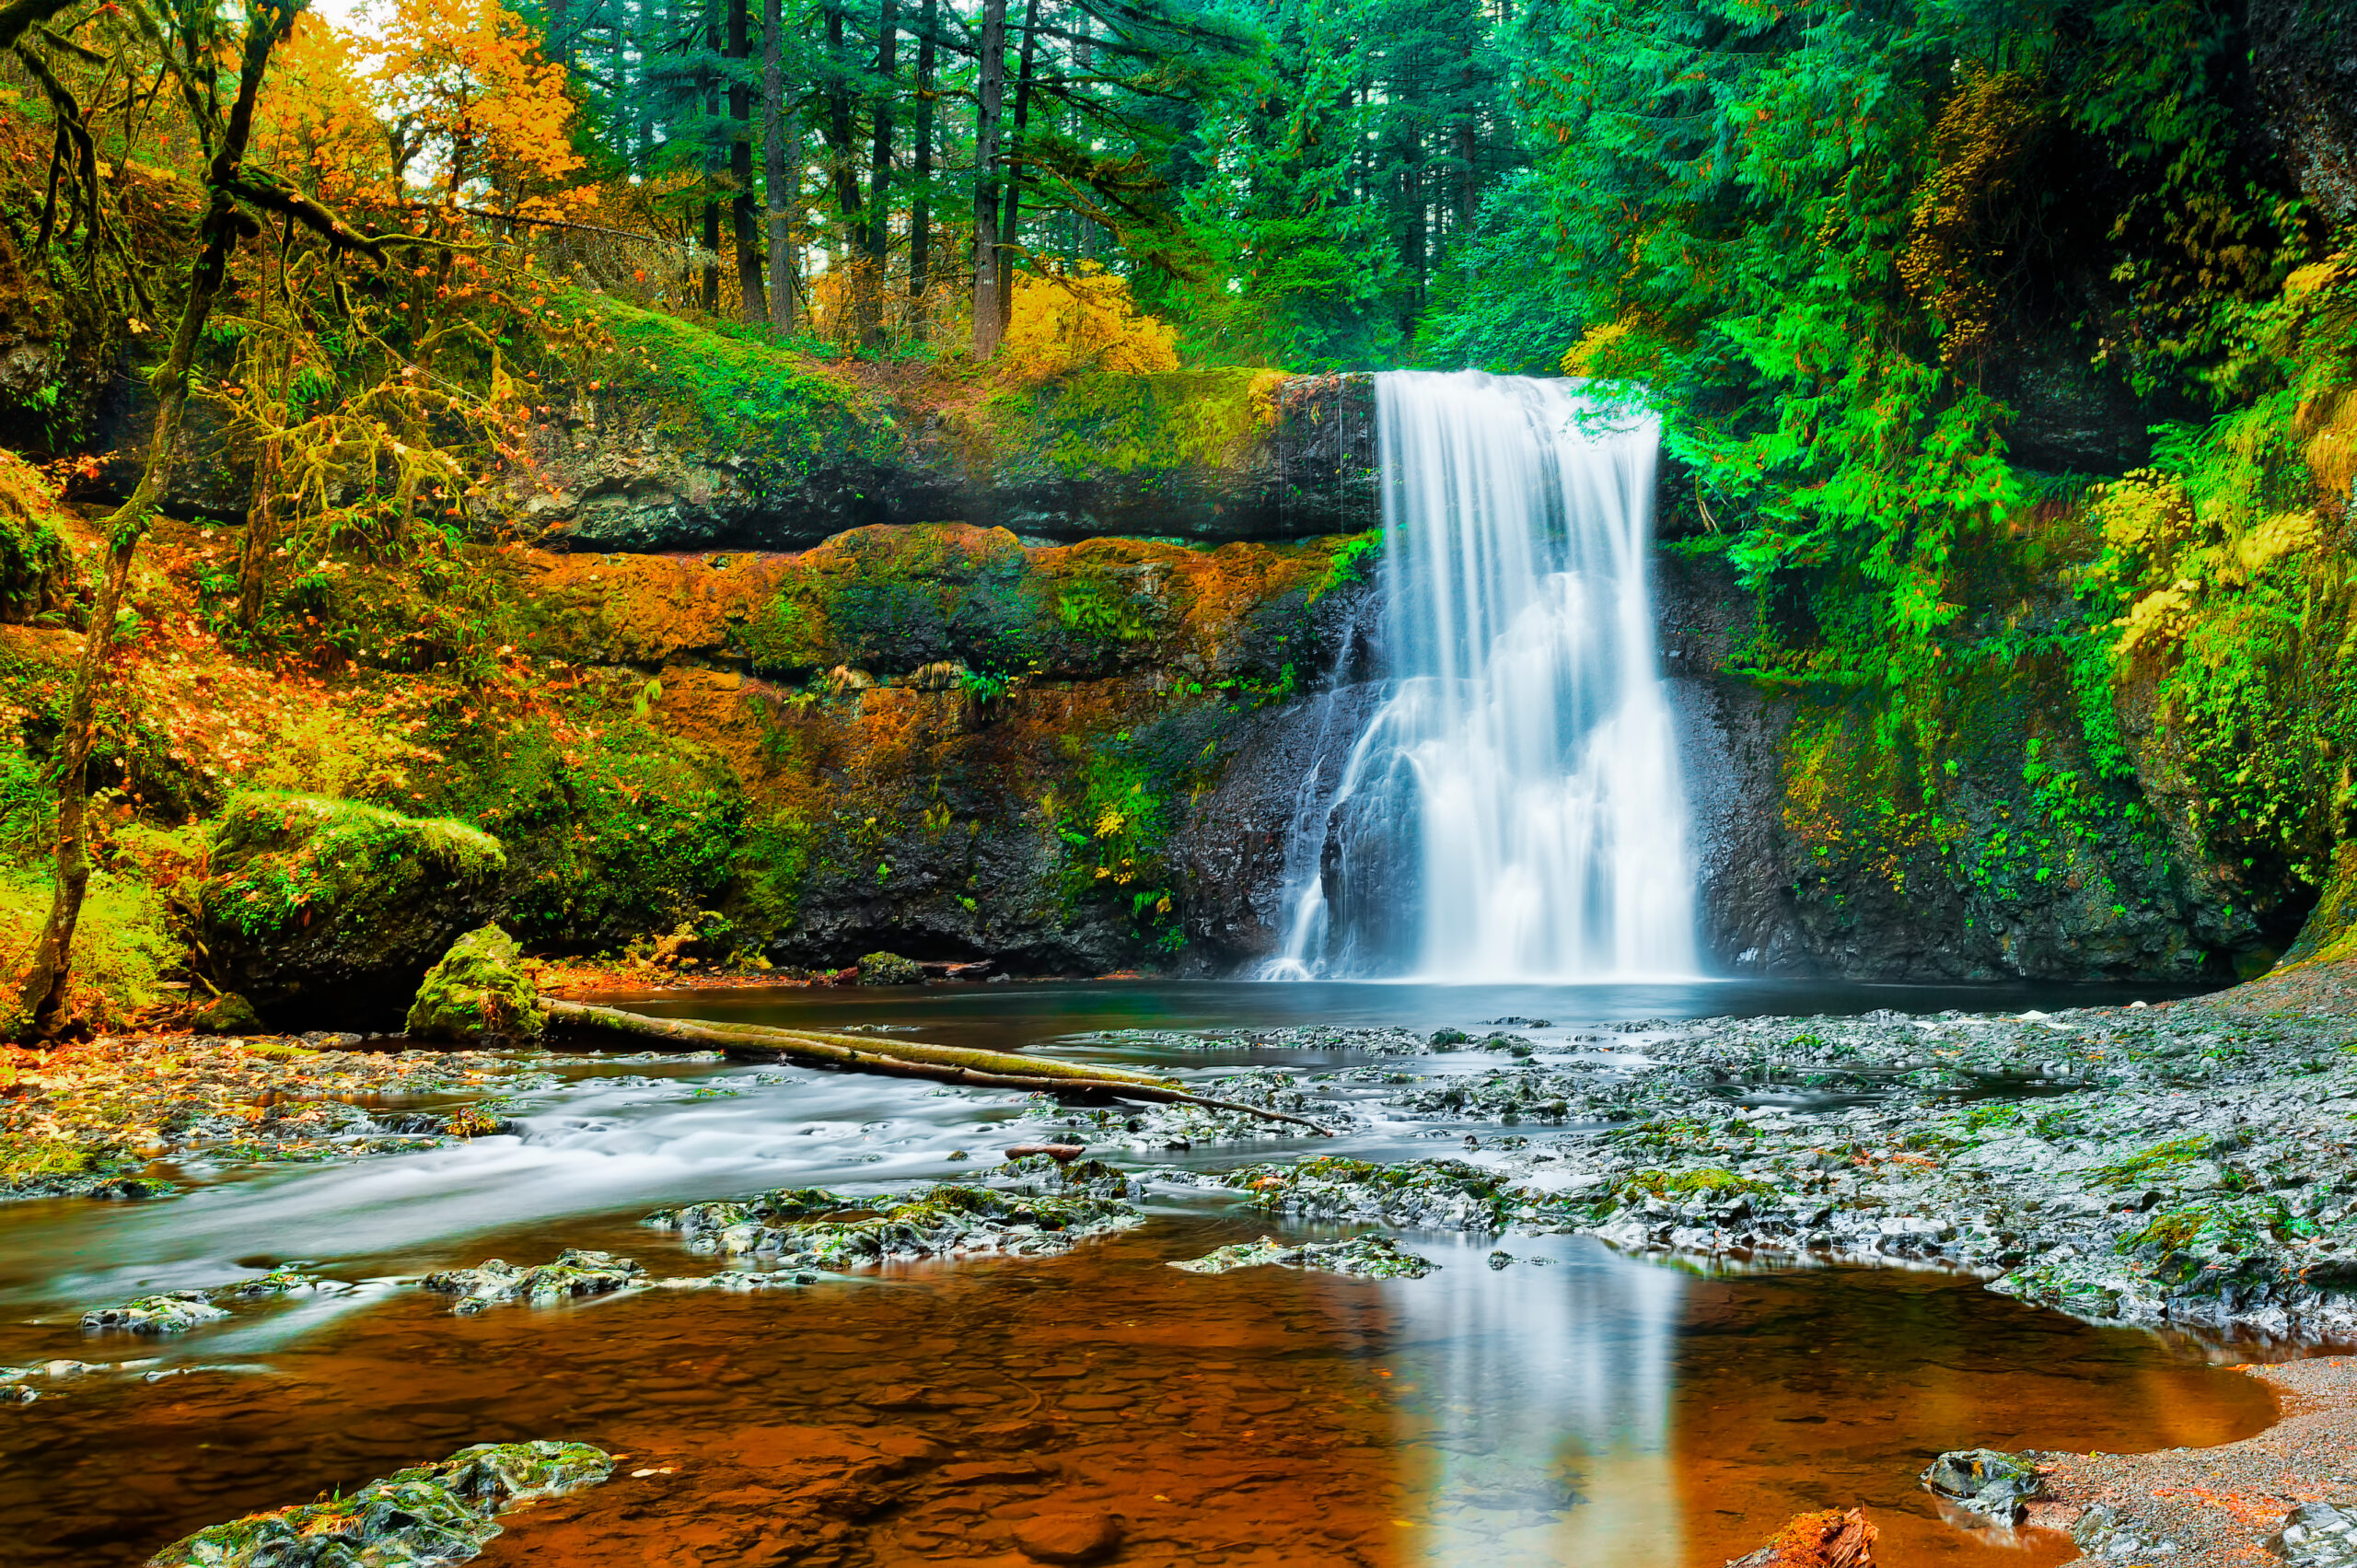 waterfall in silver falls state park, one of the best day trips from portland oregon